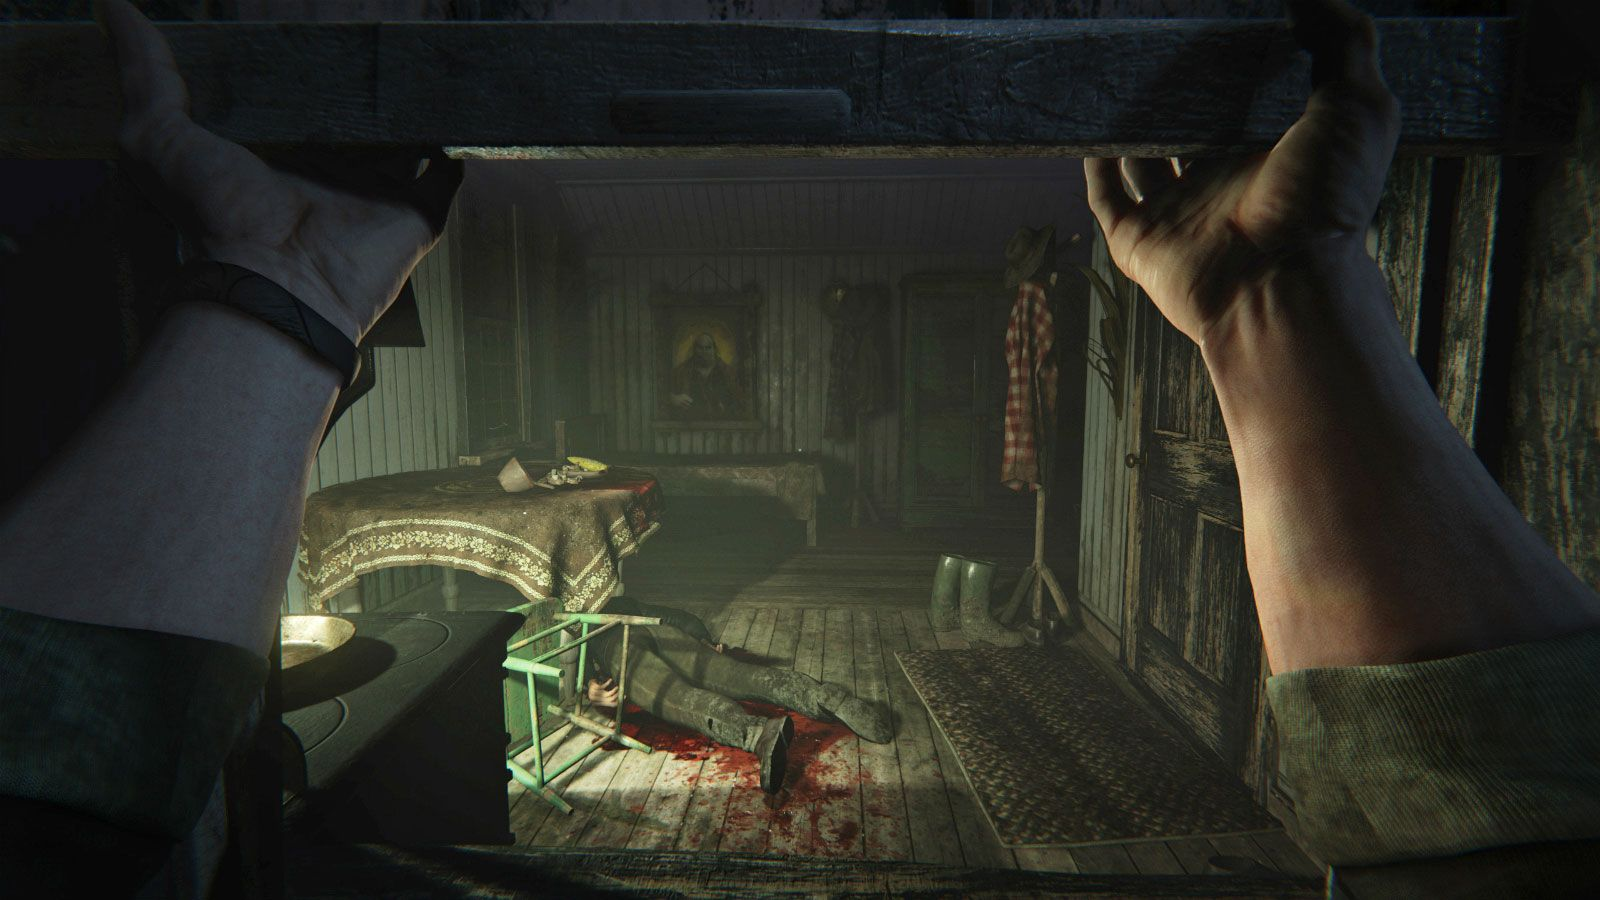 These Are the Top 5 Scary Video Games